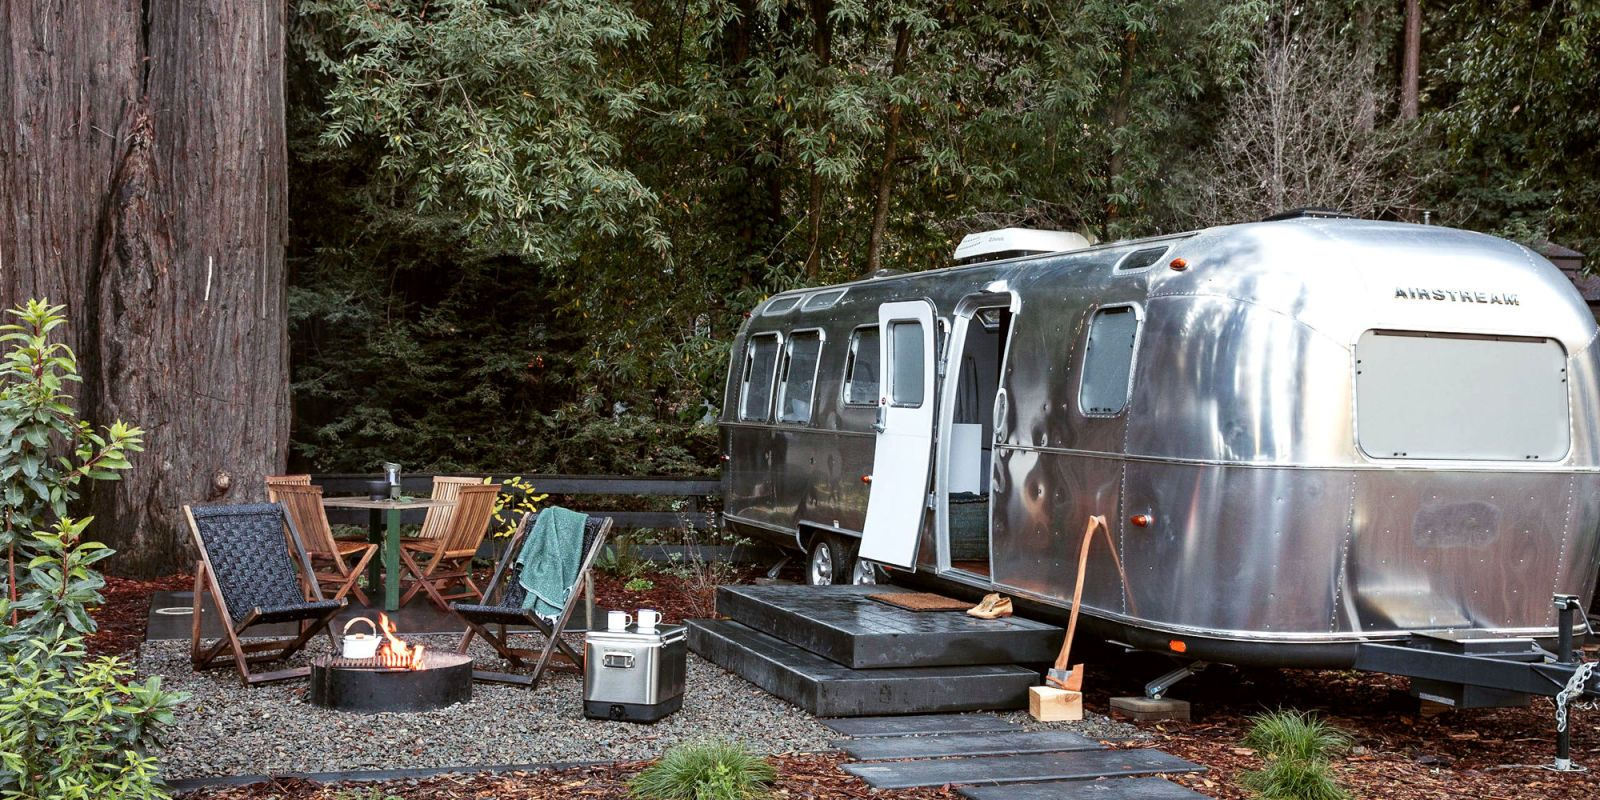 You Can Now Stay in Beautifully Designed Airstream Trailers on This California Campground  - CountryLiving.com